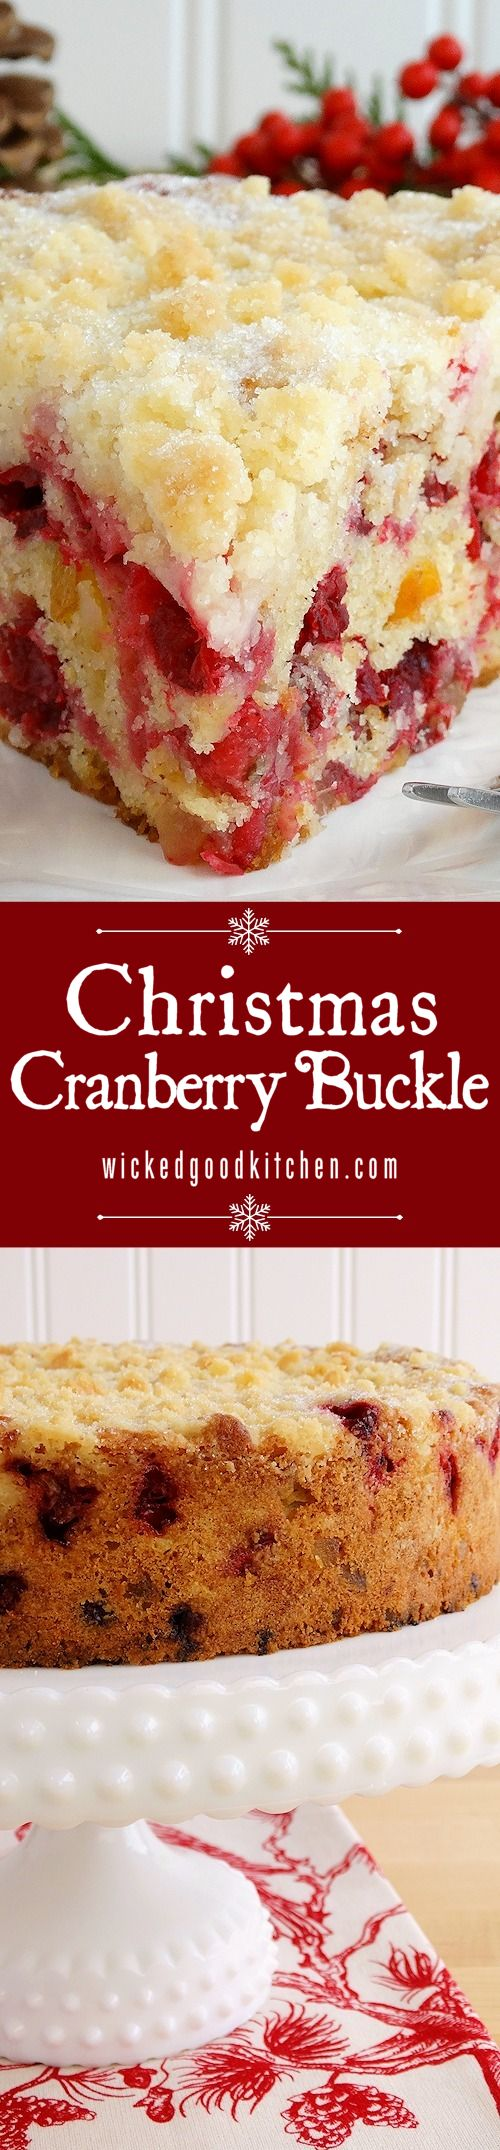 Christmas Cranberry Buckle - Holiday Cake